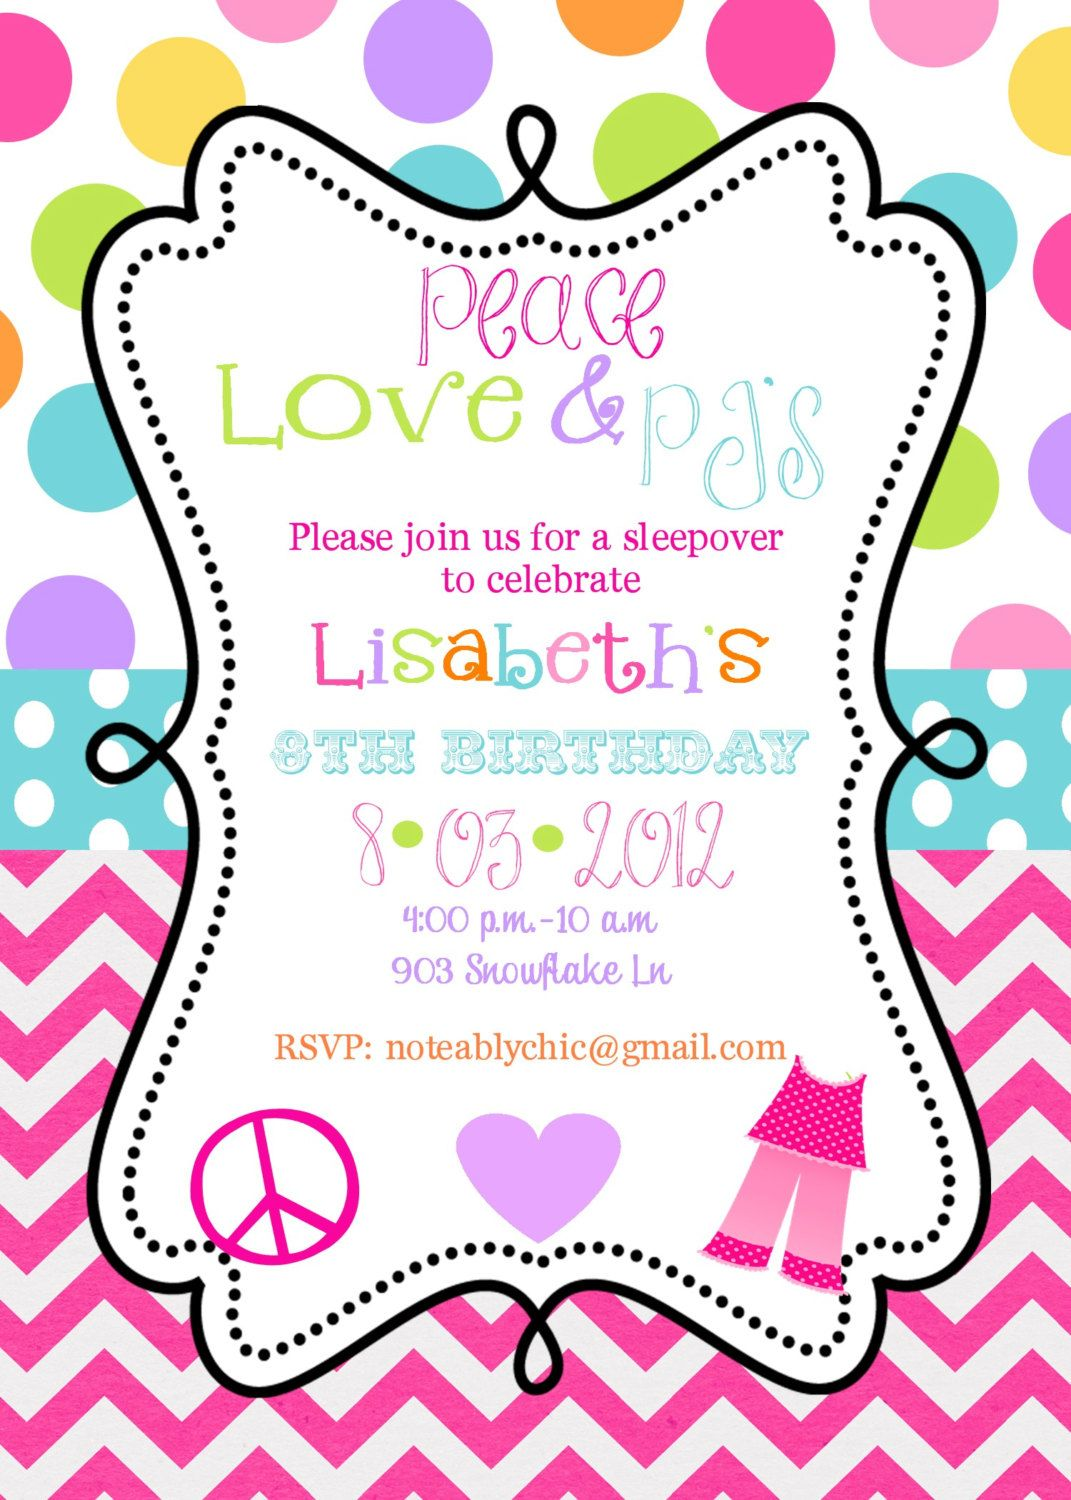 12 Peace Love Pjs Pajama Party Sleepover Slumber Party Birthday – Pajama Party Invites